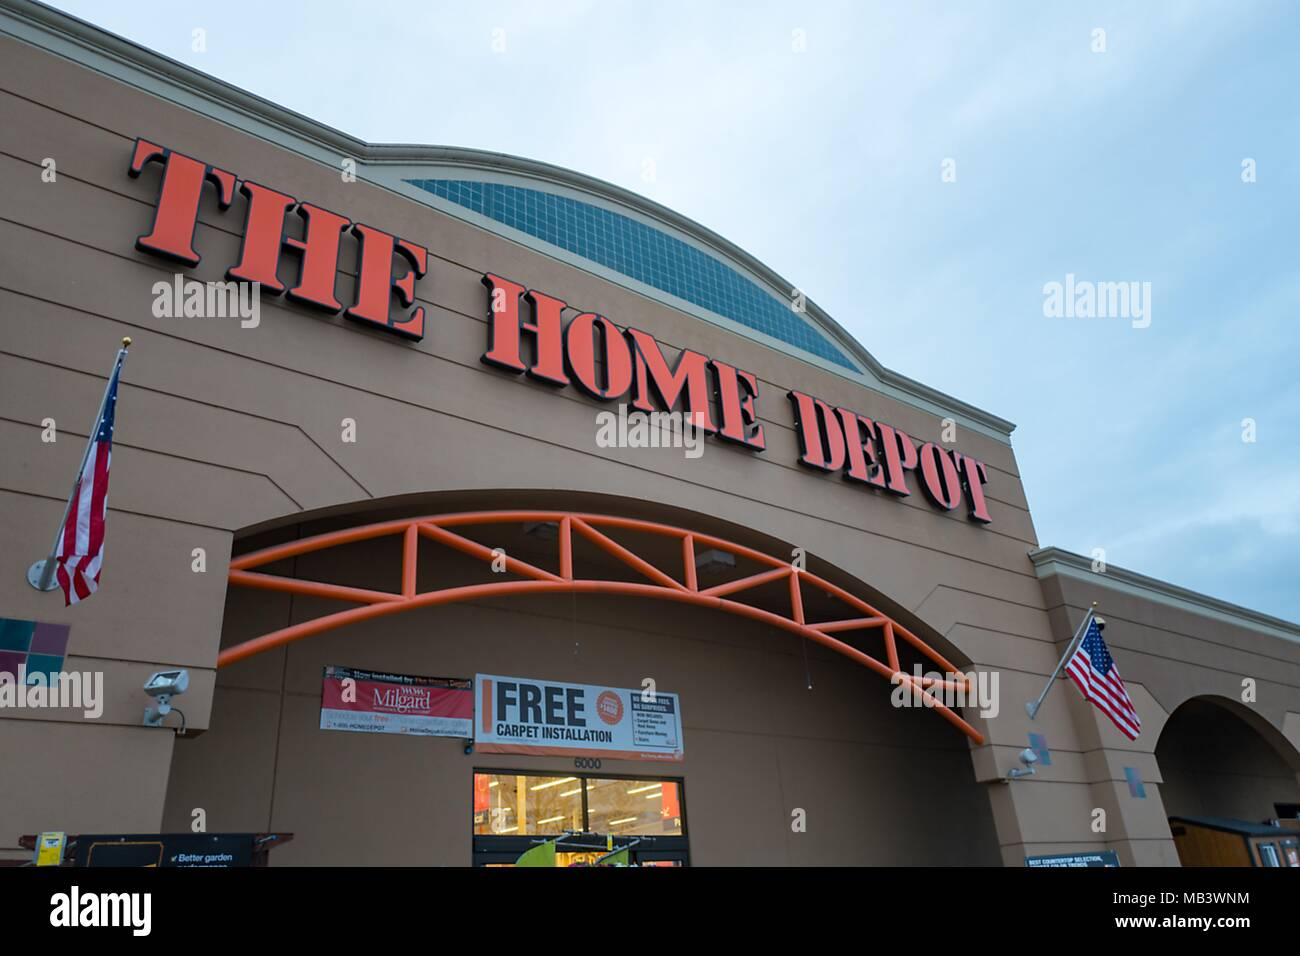 Carpet Depot Stock Photos   Carpet Depot Stock Images   Alamy Facade with logo and sign at dusk at Home Depot home improvement store in  Pleasanton